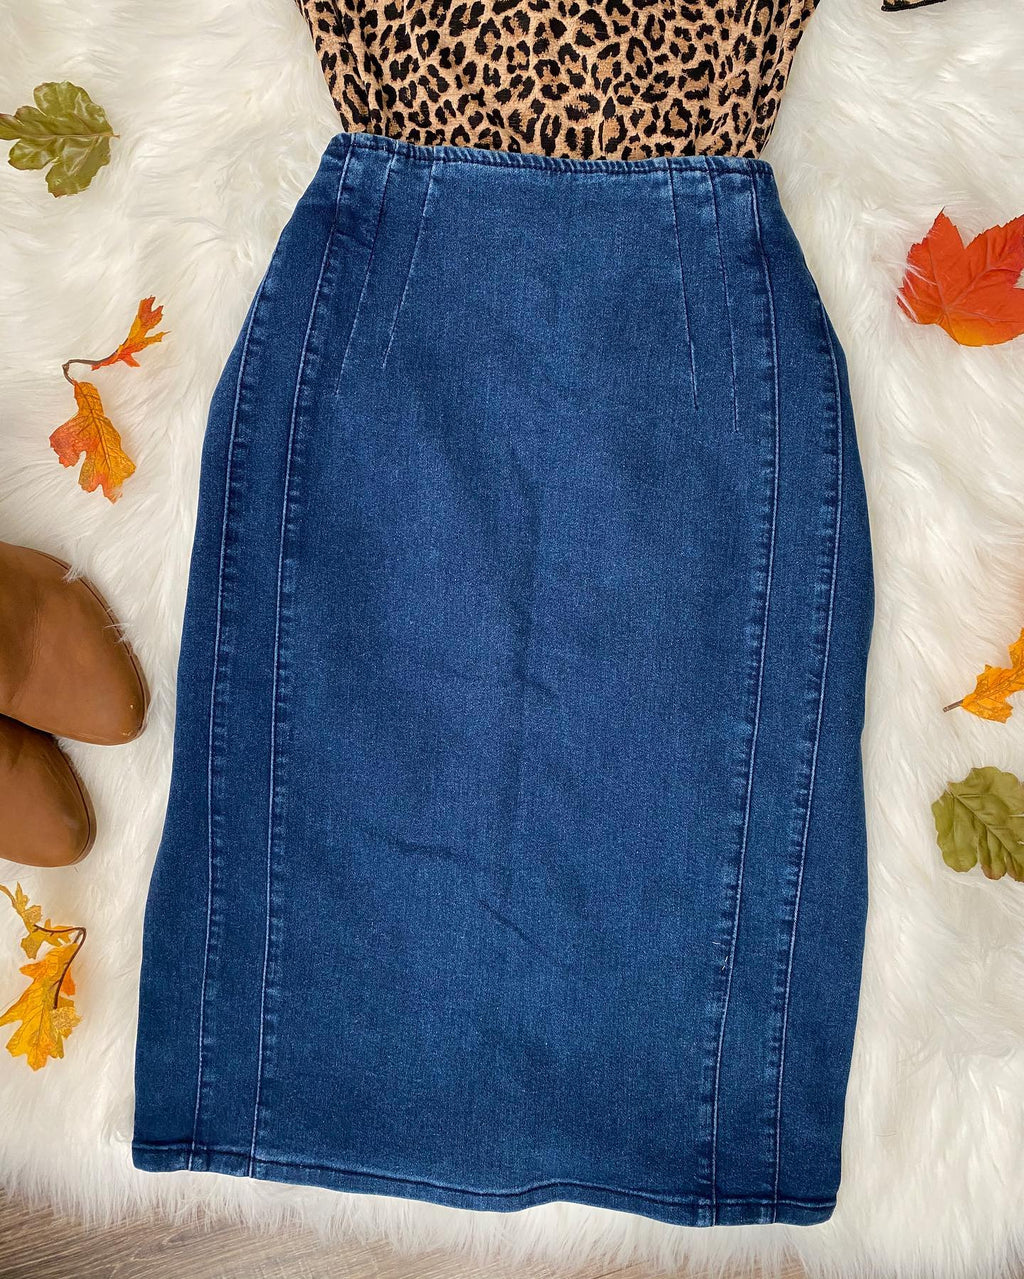 Cara Denim Pencil Skirt